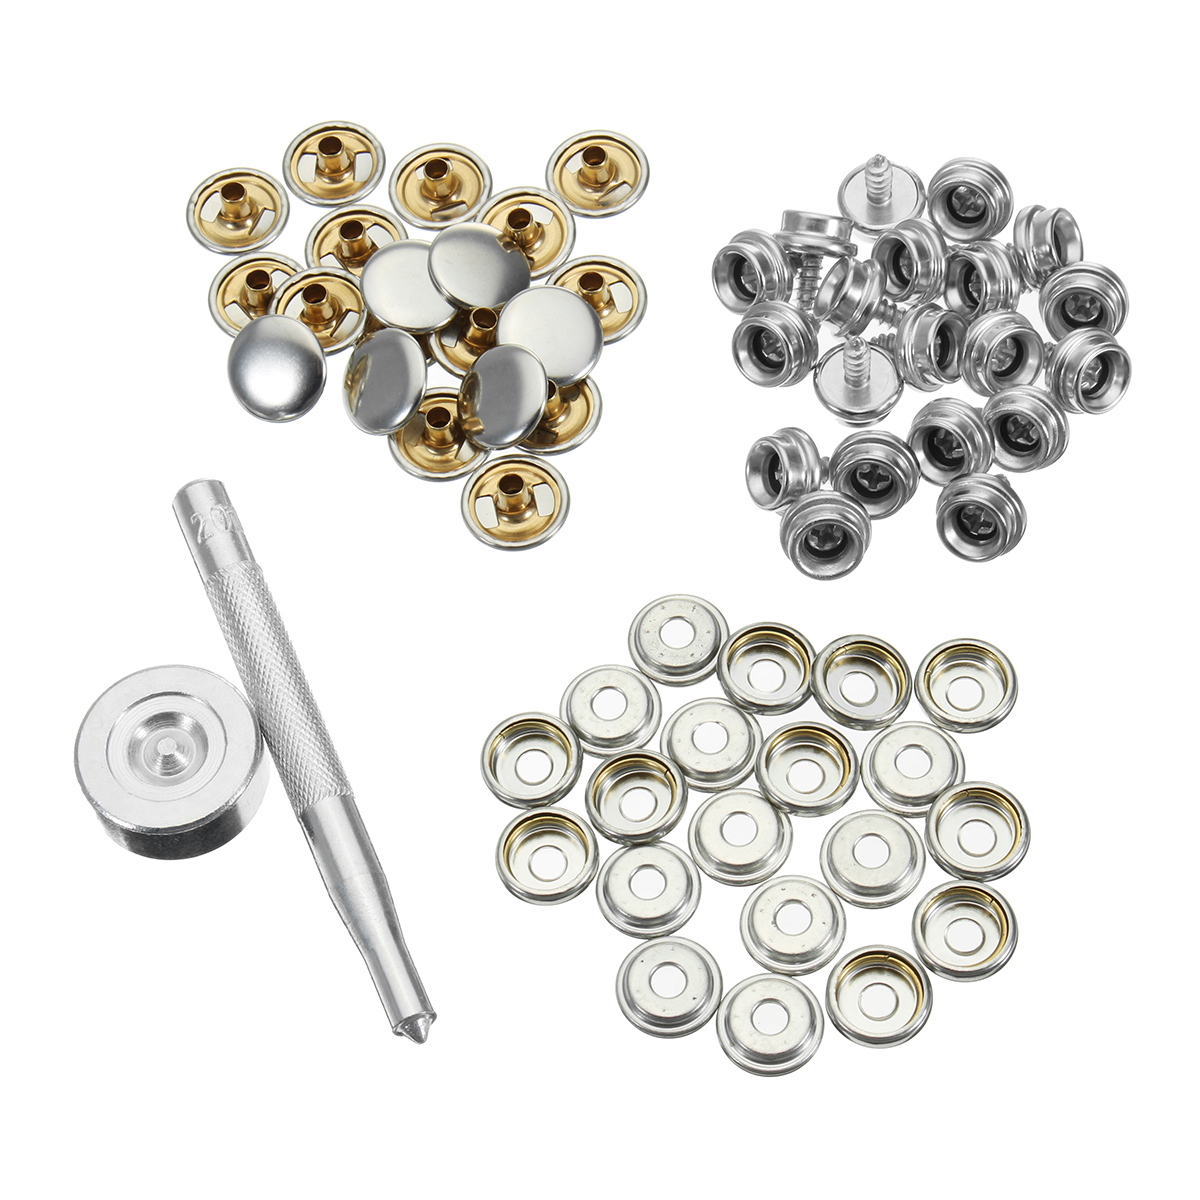 62Pcs set 3/8 Snap Fastener Boat Marine Cover Canvas Canopy Snap Fastener Sockets Screw for Boat Home Furniture